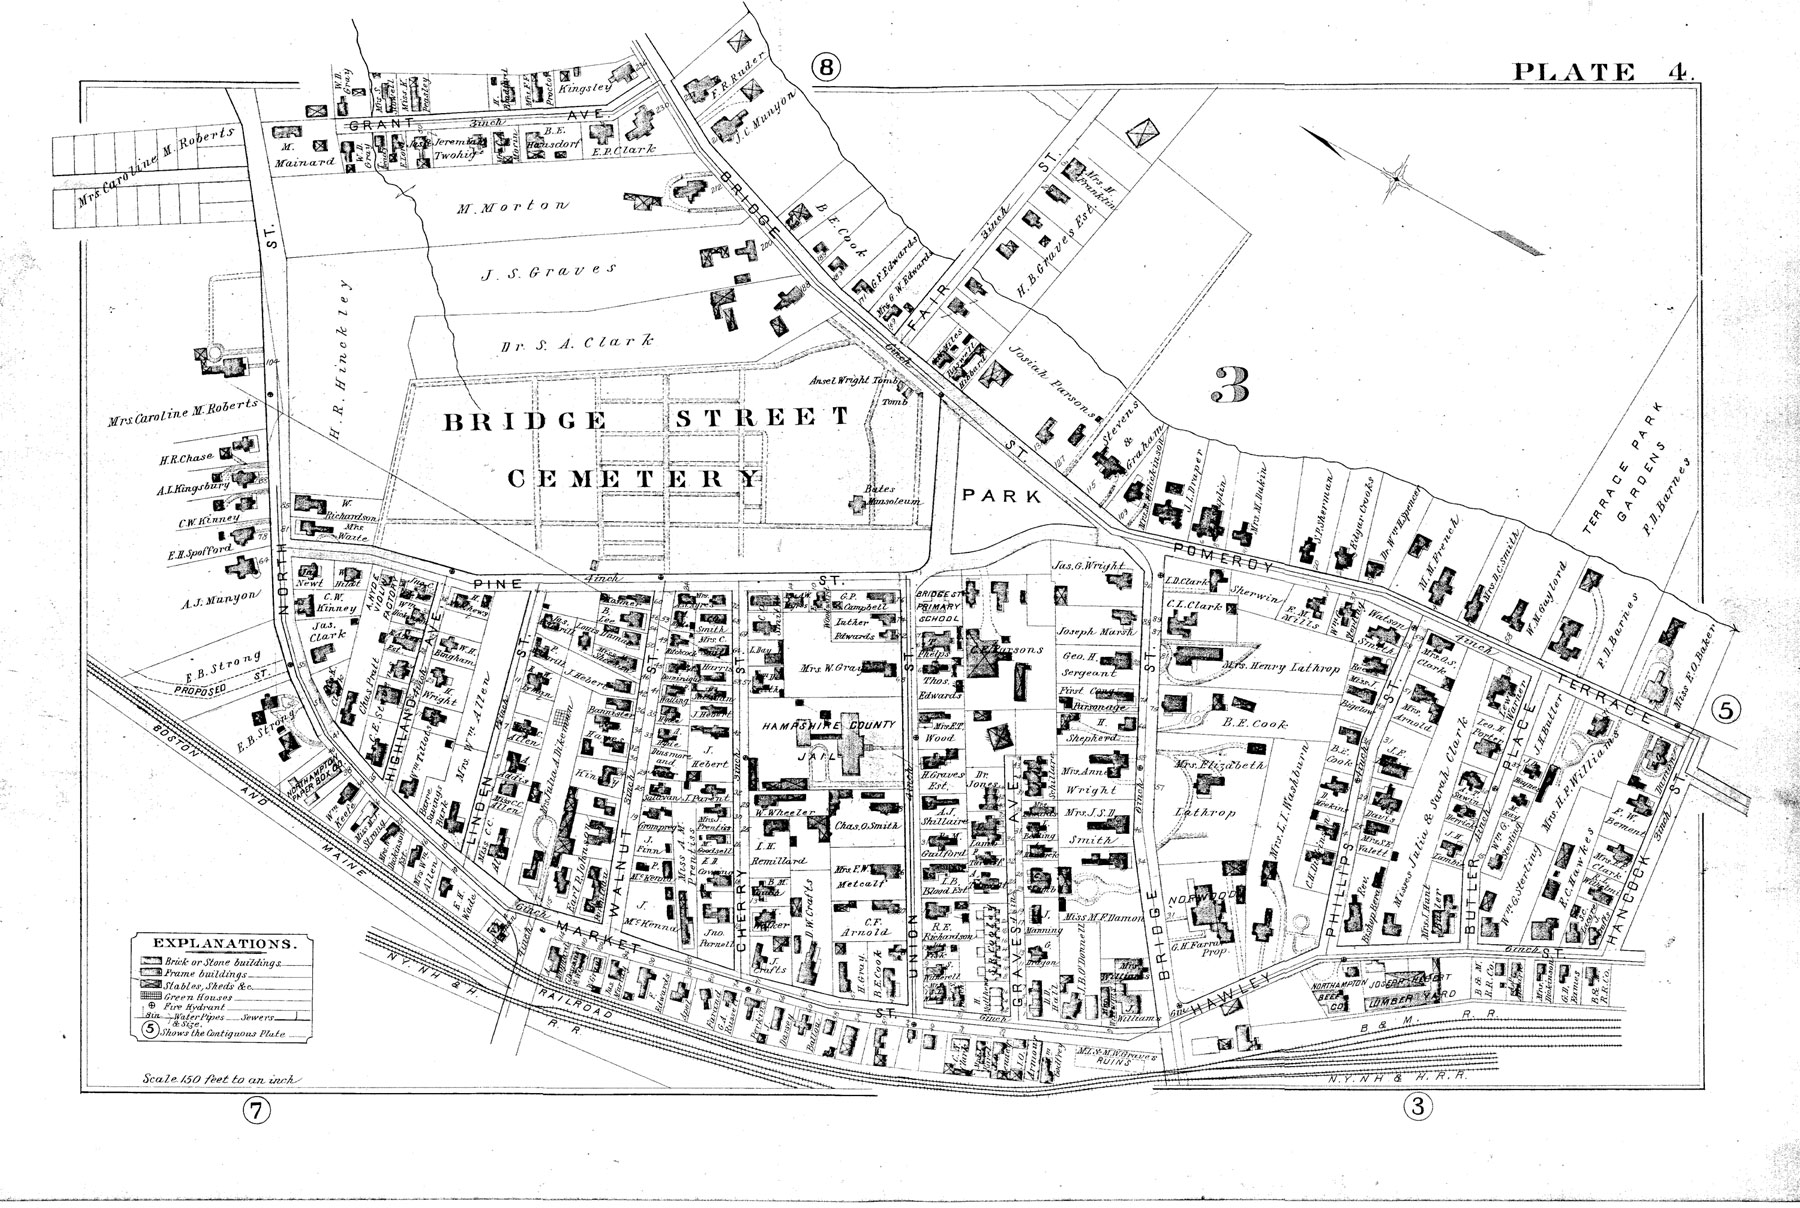 Image courtesy Historic Northampton -- see for yourself here: http://www.historic-northampton.org/members_only/maps/1895plate04.pdf